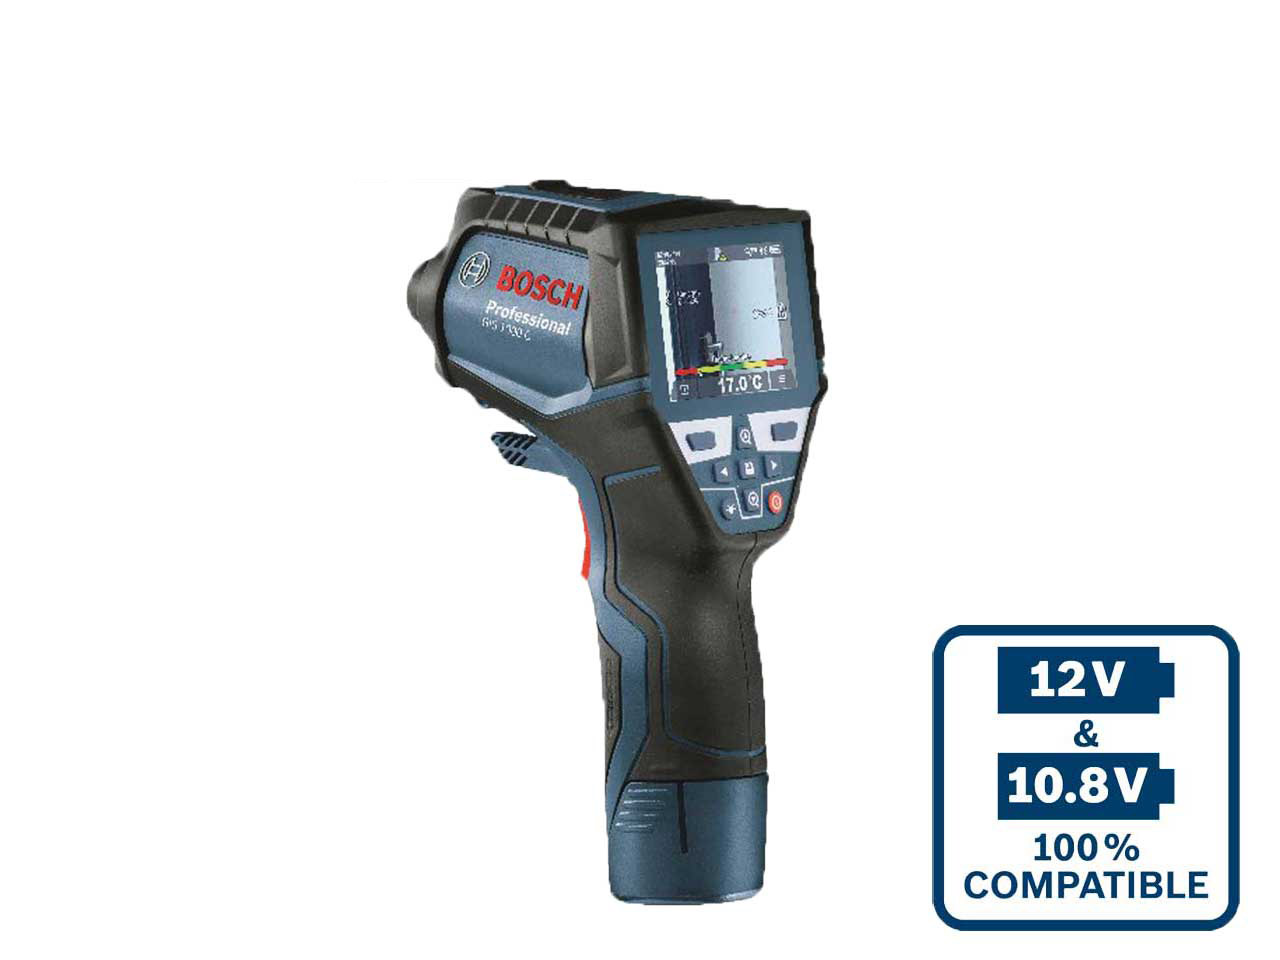 Bosch Detector Bosch Gis1000c Thermo Detector